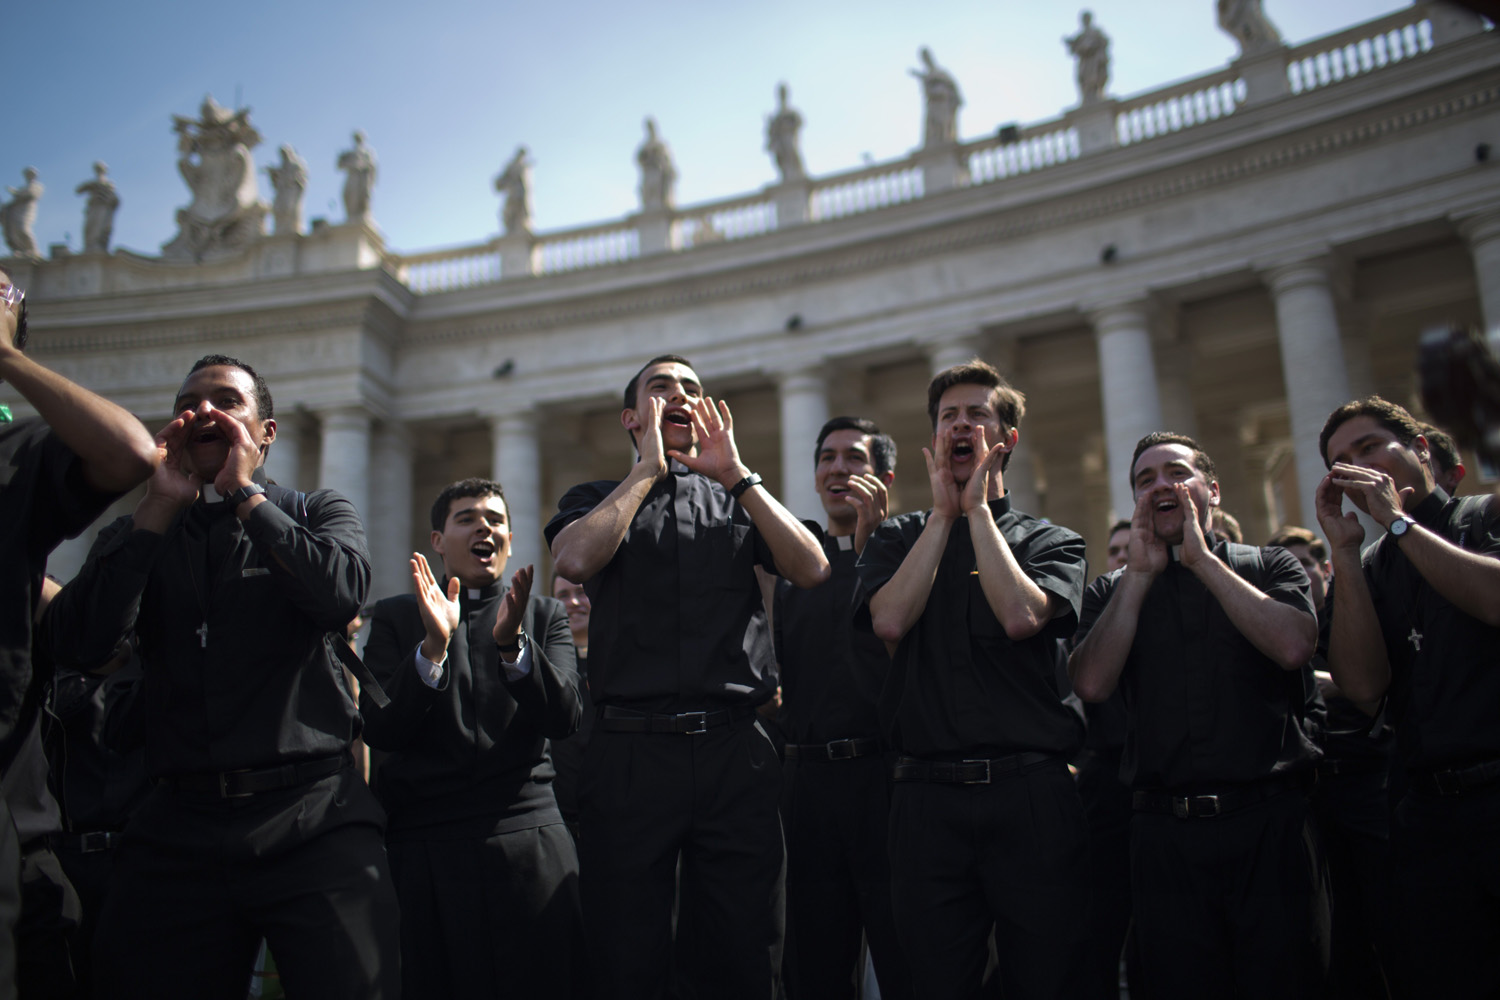 April 26, 2014. Priests sing and dance in St. Peter's Square at the Vatican. Pilgrims and faithful gathered in Rome to attend Sunday's ceremony at the Vatican where Pope Francis will elevate in a solemn ceremony John XXIII and John Paul II to sainthood.